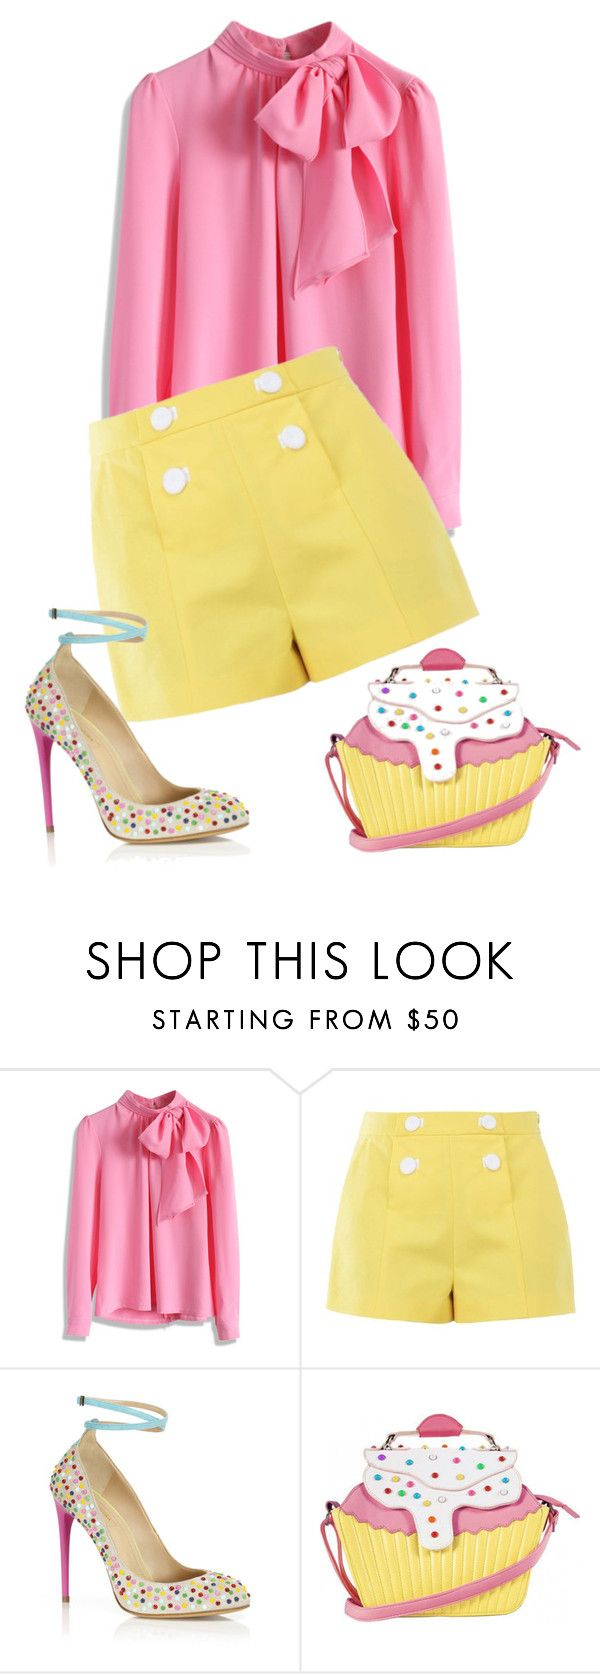 """""""Untitled #2076"""" by aimee-lowenstern ❤ liked on Polyvore featuring Chicwish, Boutique Moschino, Aquazzura and Iron Fist"""